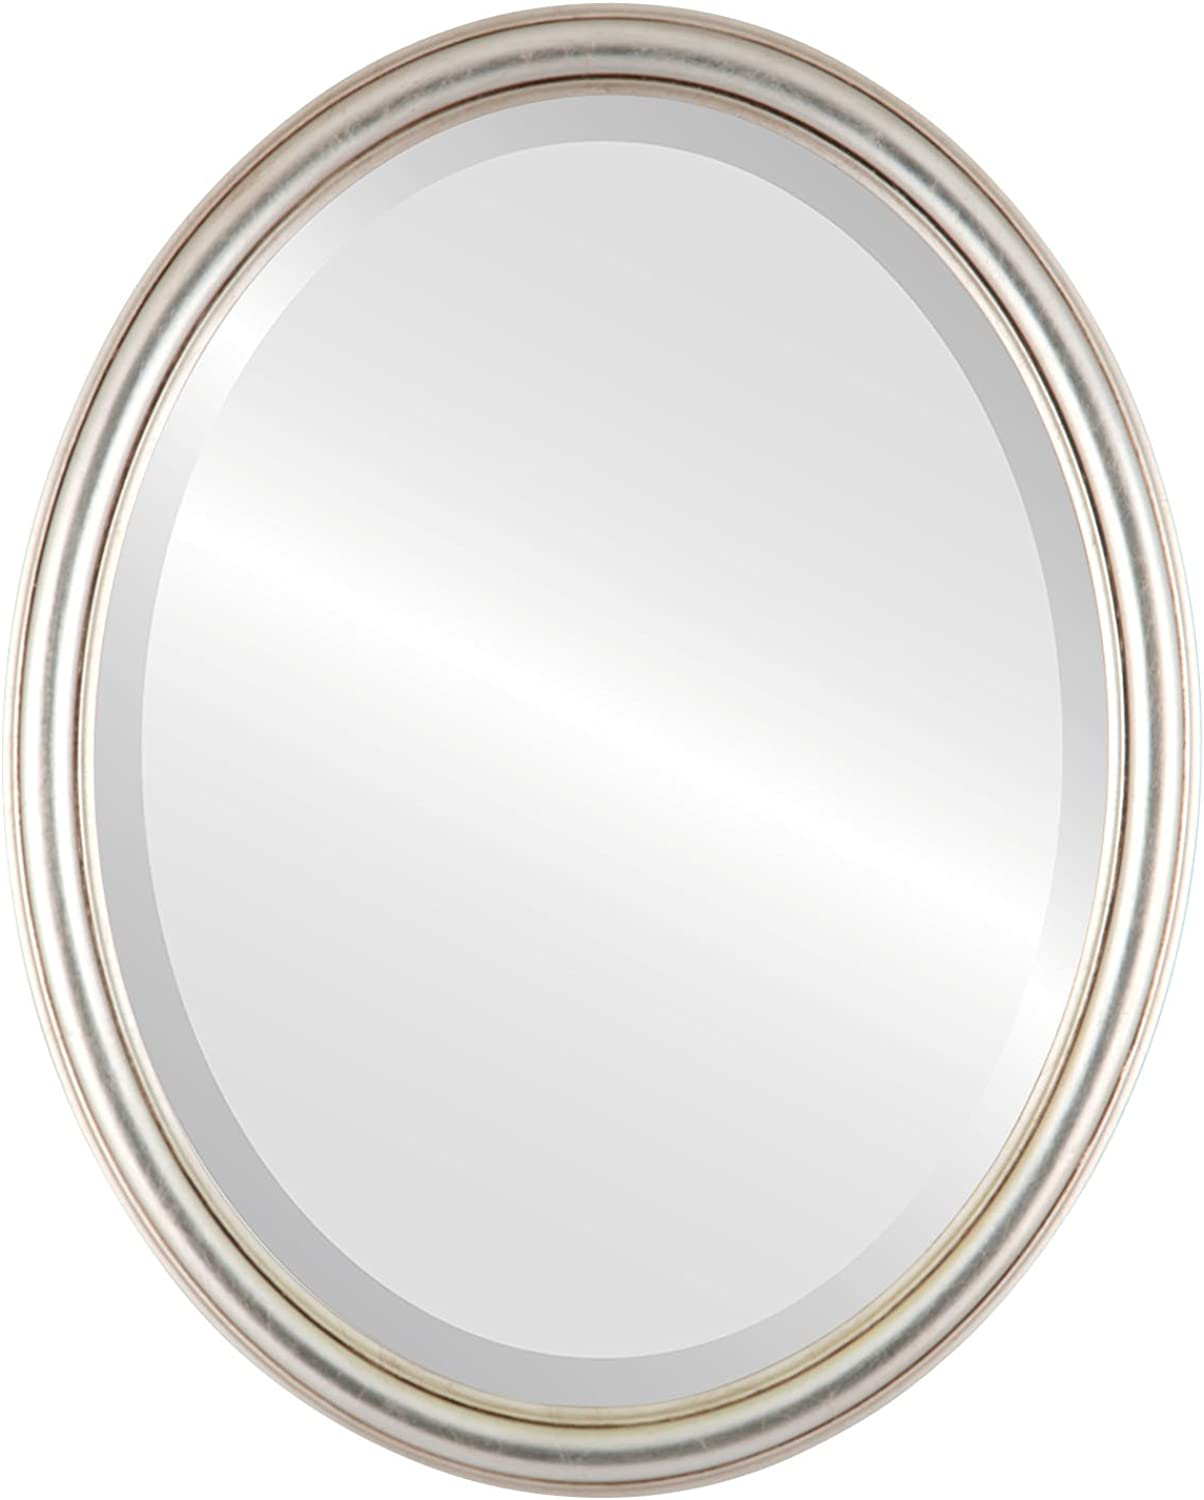 Saratoga Oval in Silver Leaf with Brown Antique